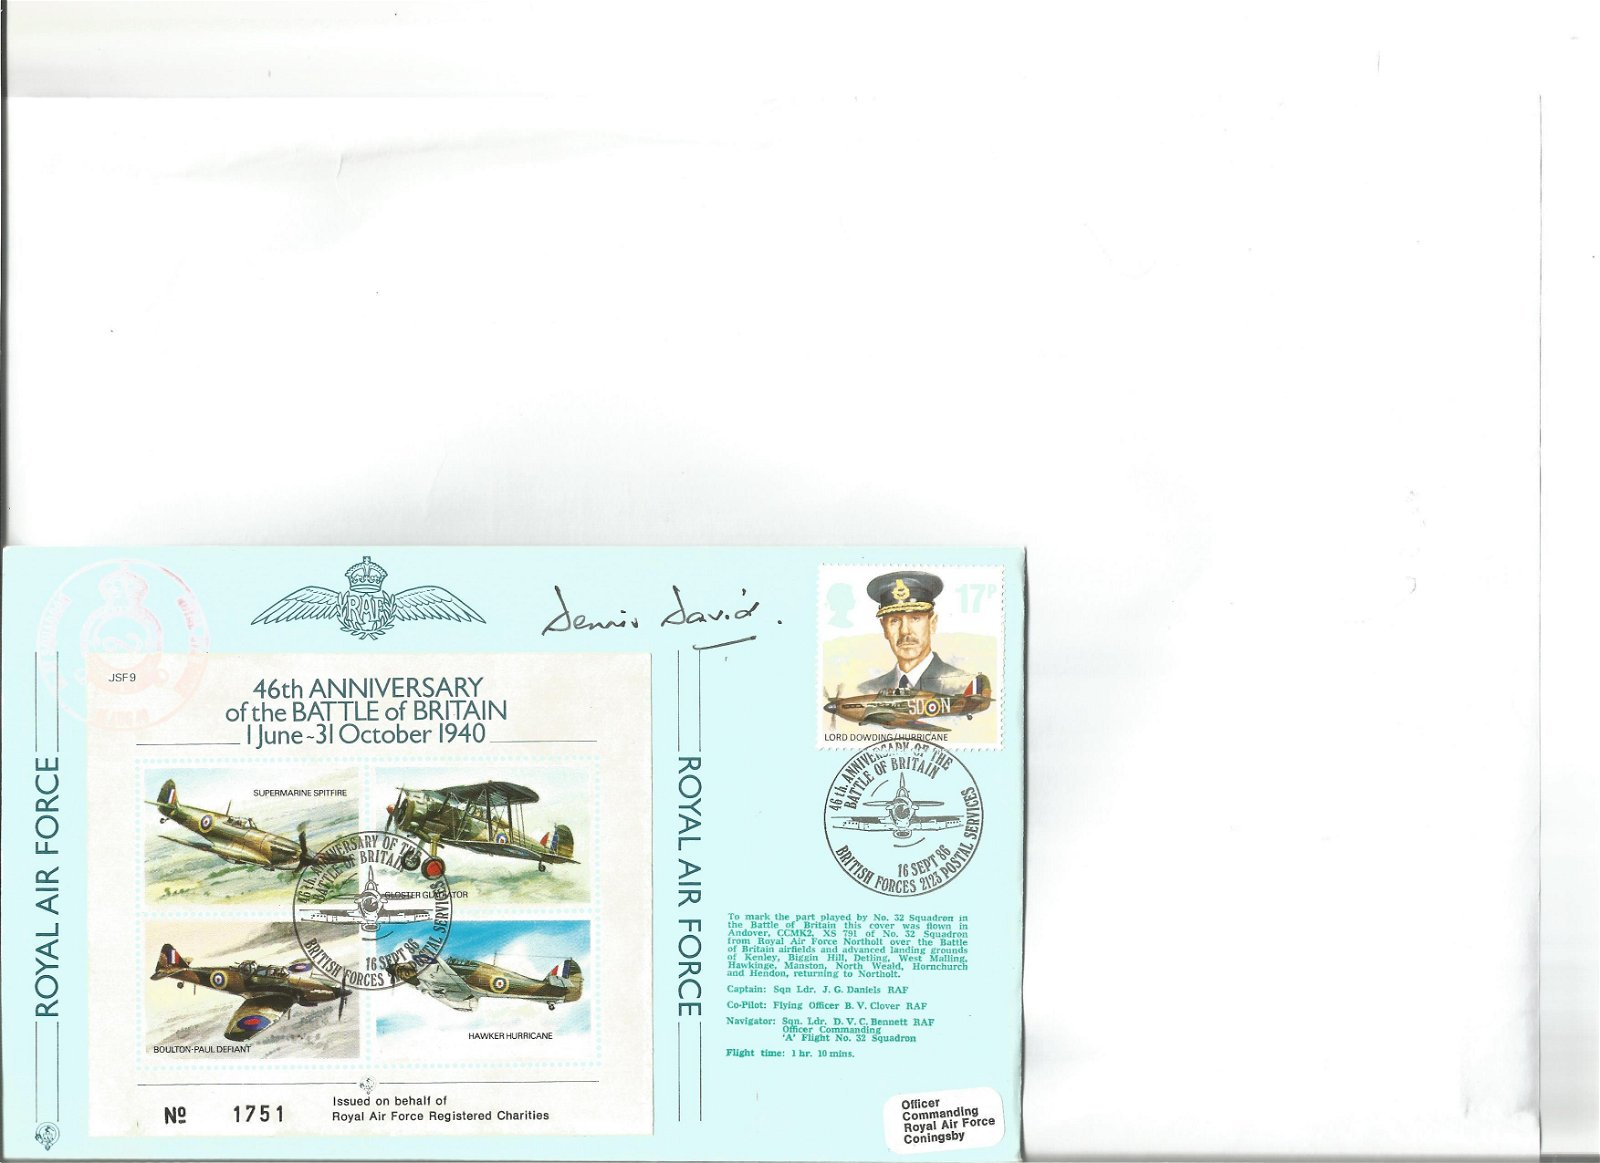 Grp Capt Denis David signed Joint Service Fighter cover